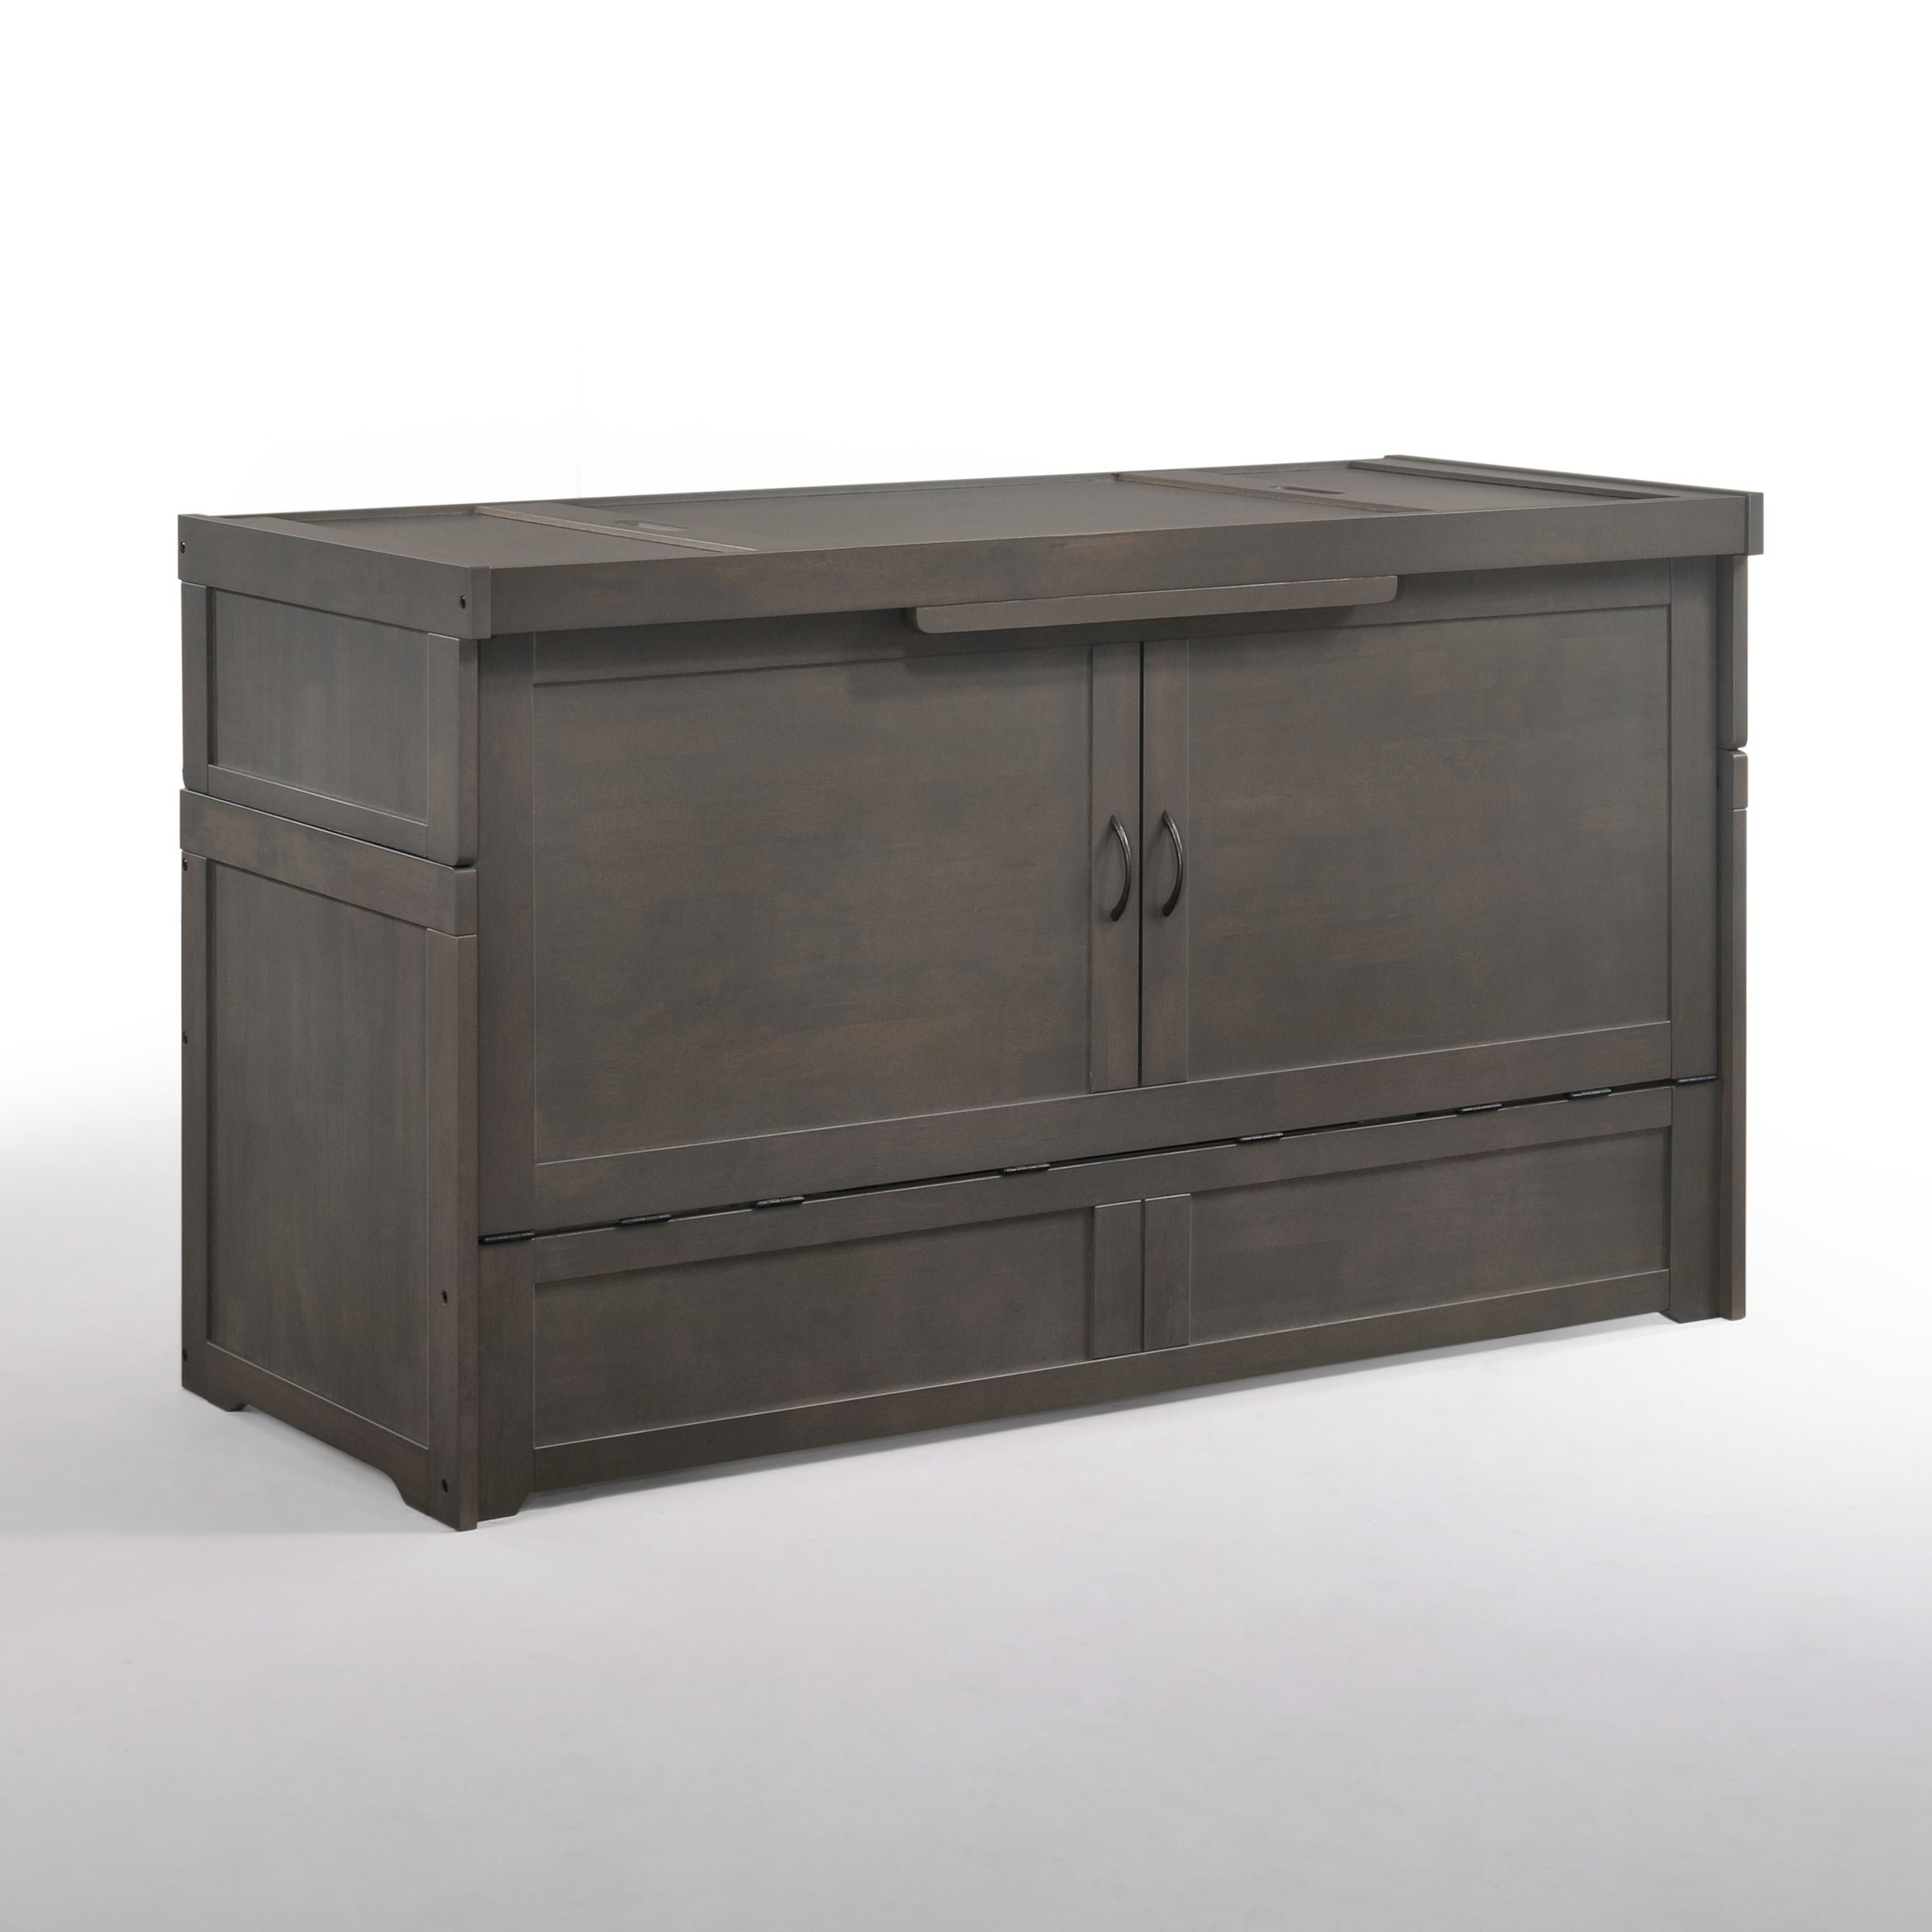 Cube Queen Murphy Cabinet Bed Stonewash By Night Day Furniture